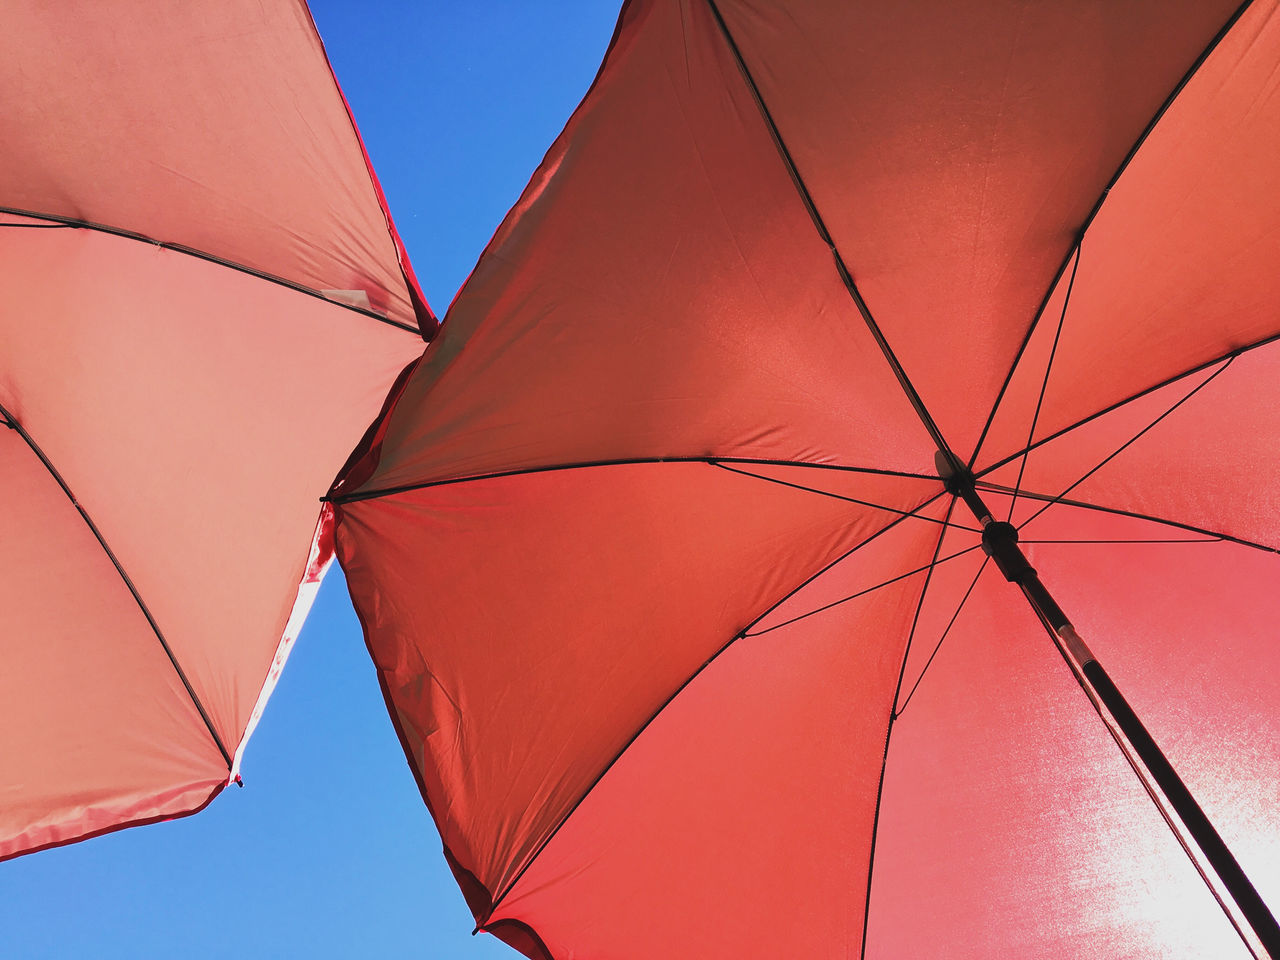 Low Angle View Of Two Parasols Back Lit Beach Umbrella Blue Blue Sky Clear Sky Close-up Color Image Day Directly Below Full Frame Horizontal Low Angle View No People Outdoors Parasol Photography Protection Red Shelter Sky Summer Sunshade Two Objects